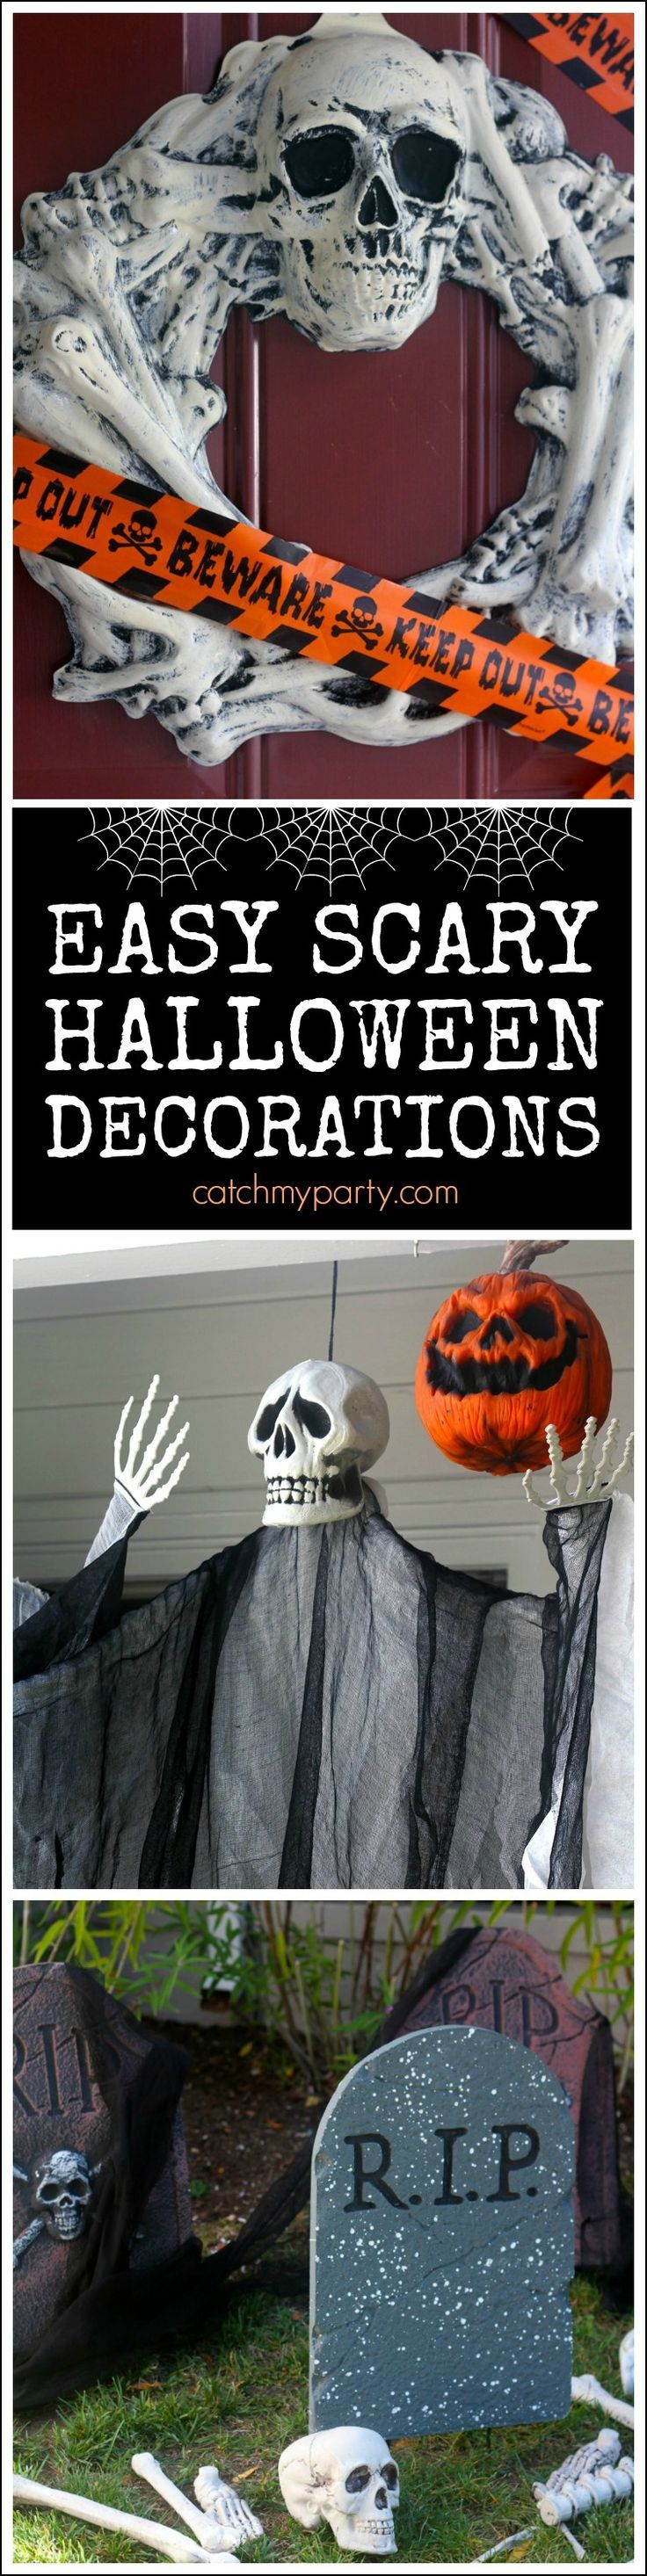 Here's How Easy It Is To Decorate Your Front Yard With Scary Decorations I  Created